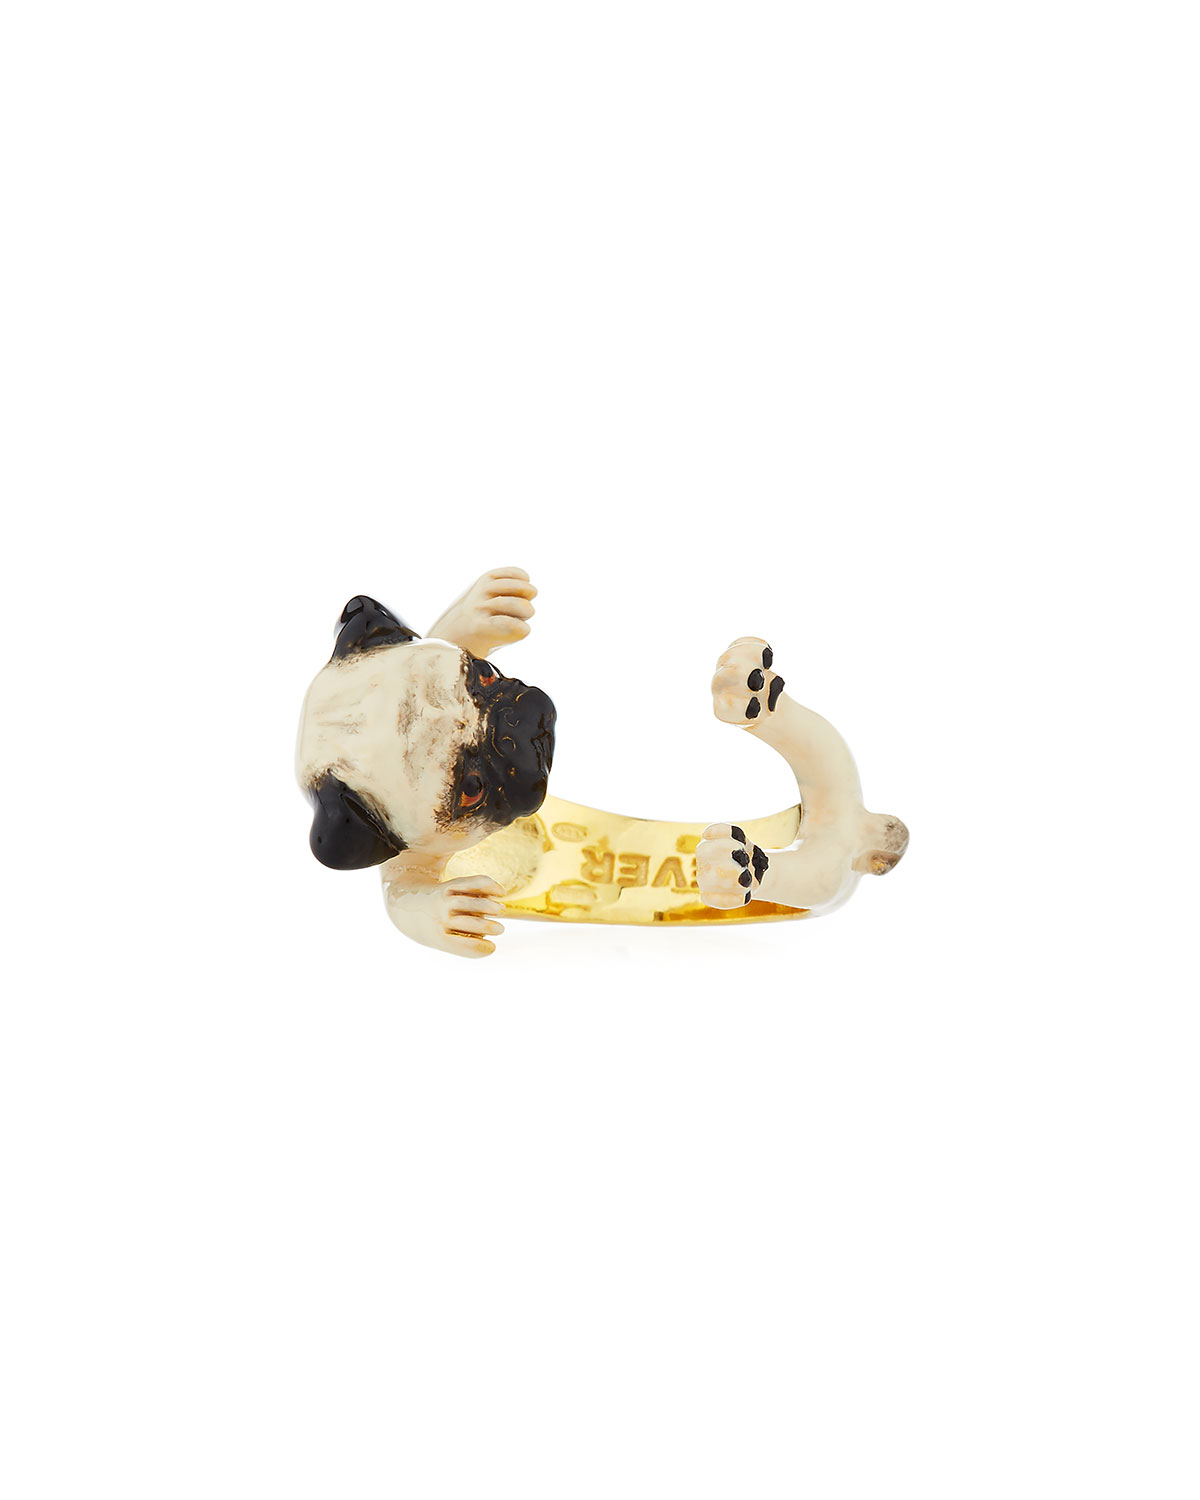 Visconti & Du Réau Boston Terrier Plated Enamel Dog Hug Ring, Size 7